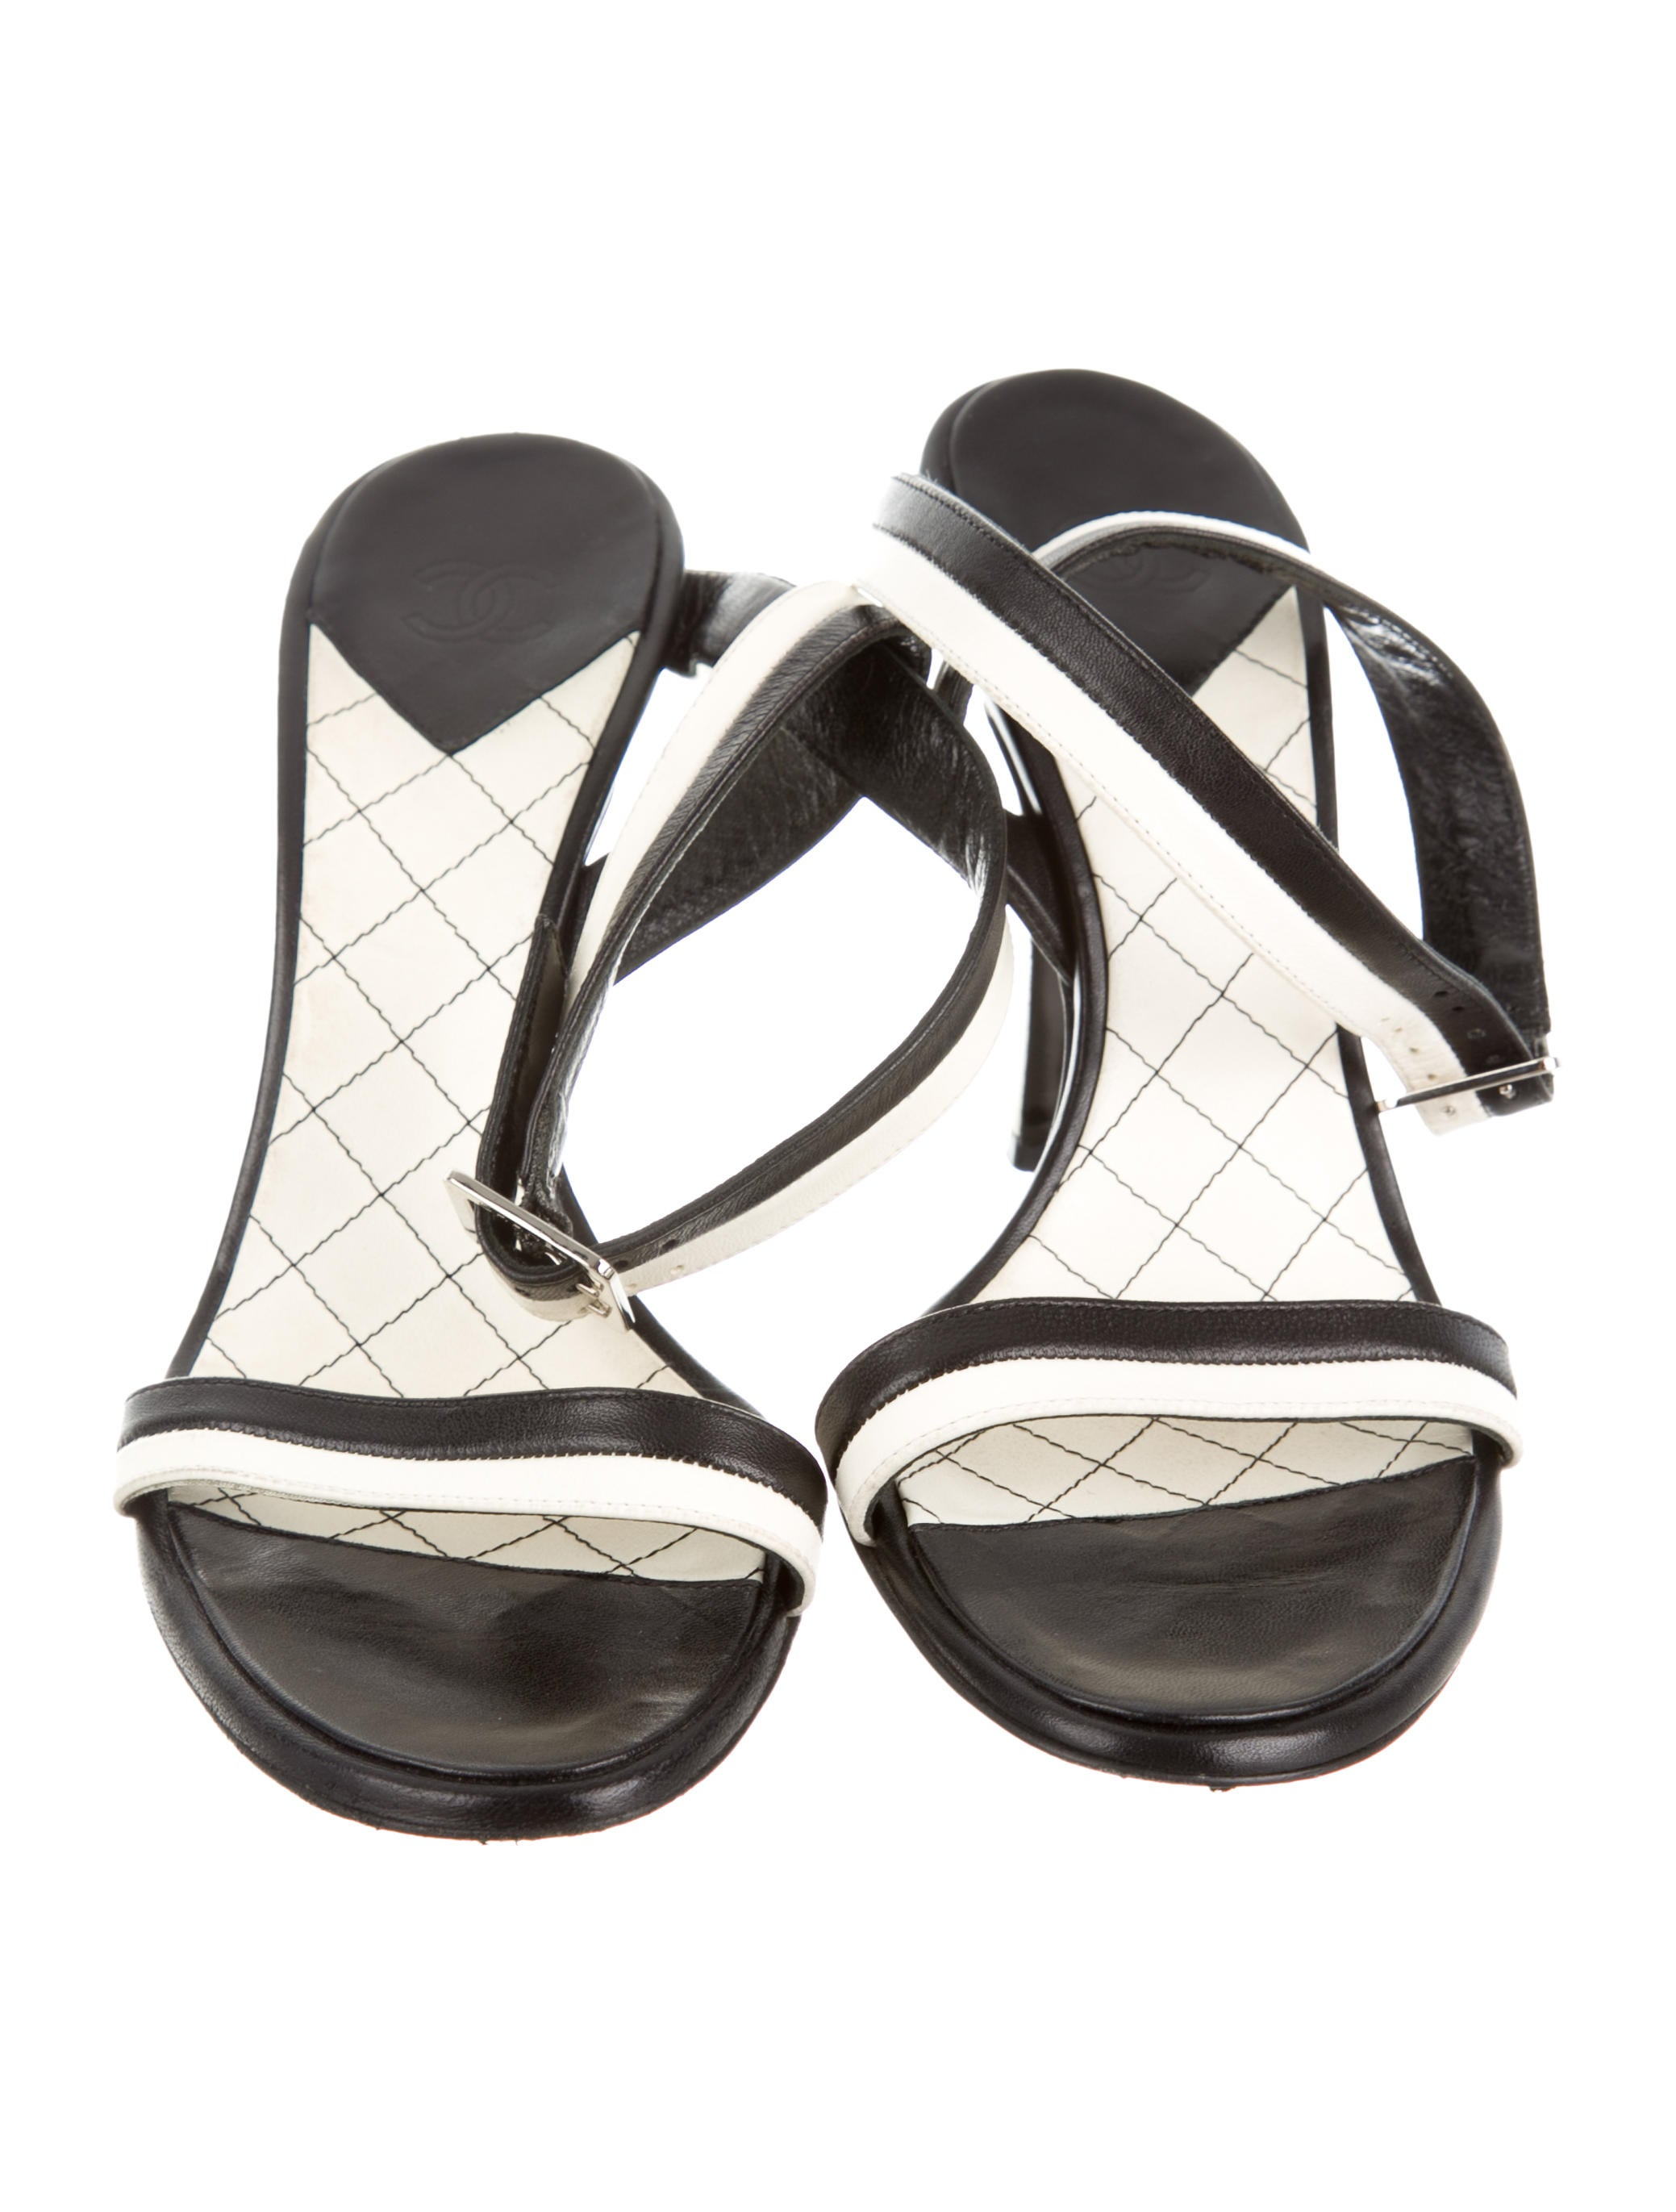 Chanel Round-Toe Leather Sandals - Shoes - CHA89519 | The RealReal